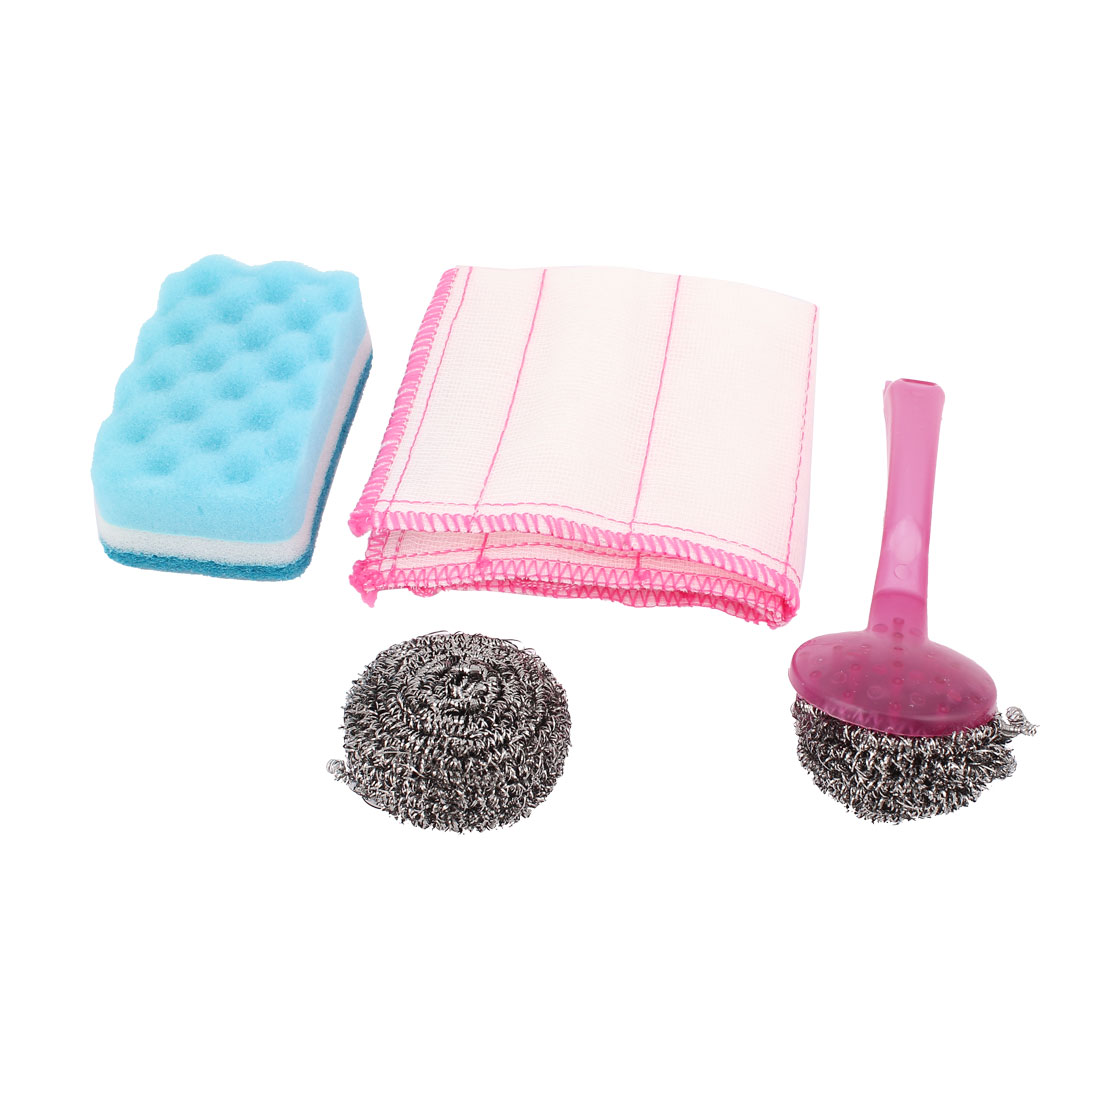 Kitchen Plastic Handle Steel Ball Scourer Sponge Pad White Cleaning Cloth Dish Washing Tool 4 in 1 Set